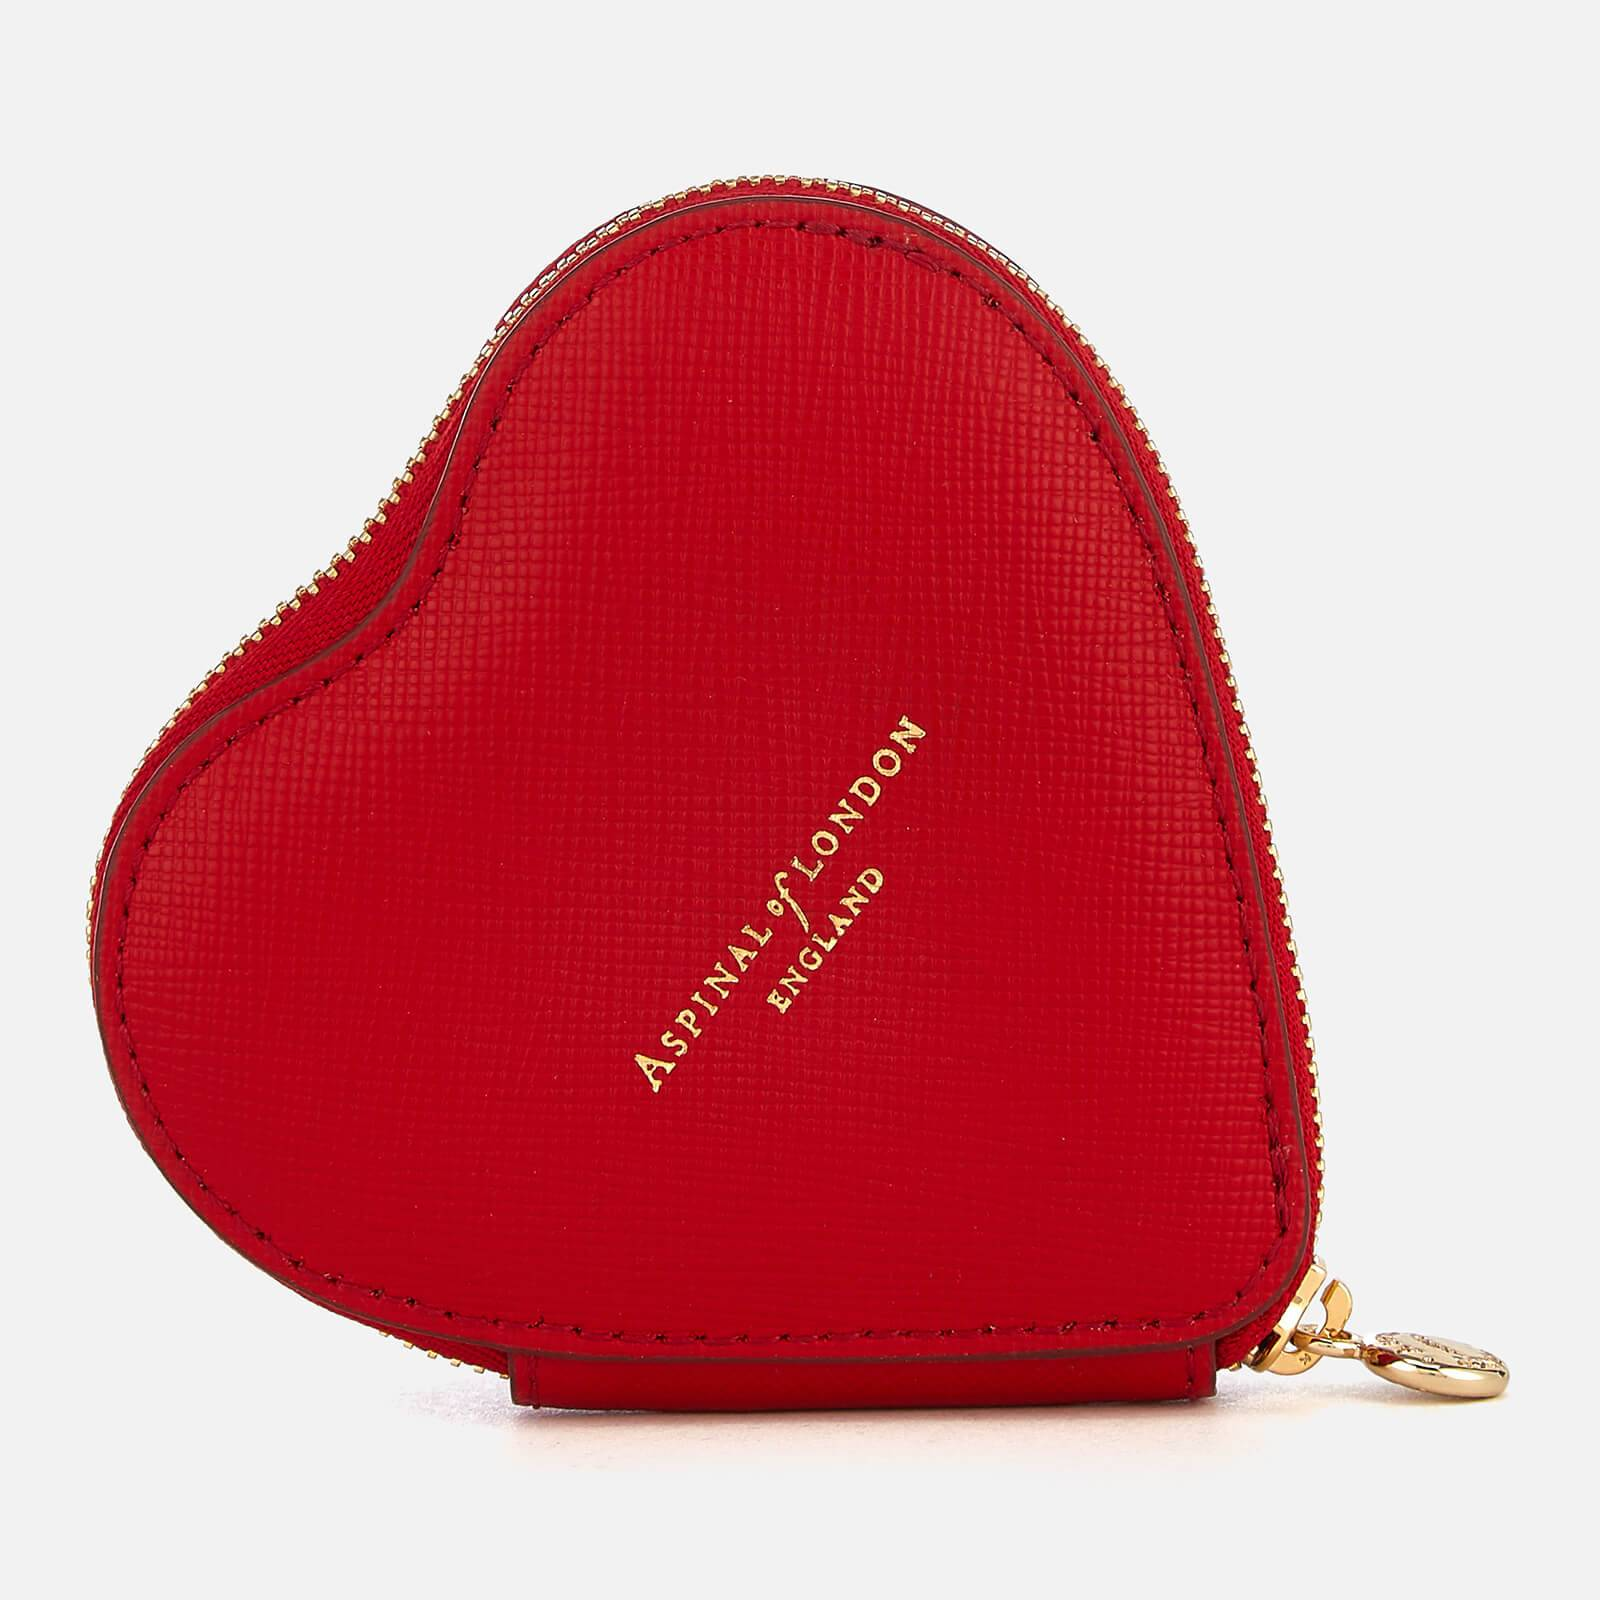 Aspinal of London Women's Heart Coin Purse - Scarlet